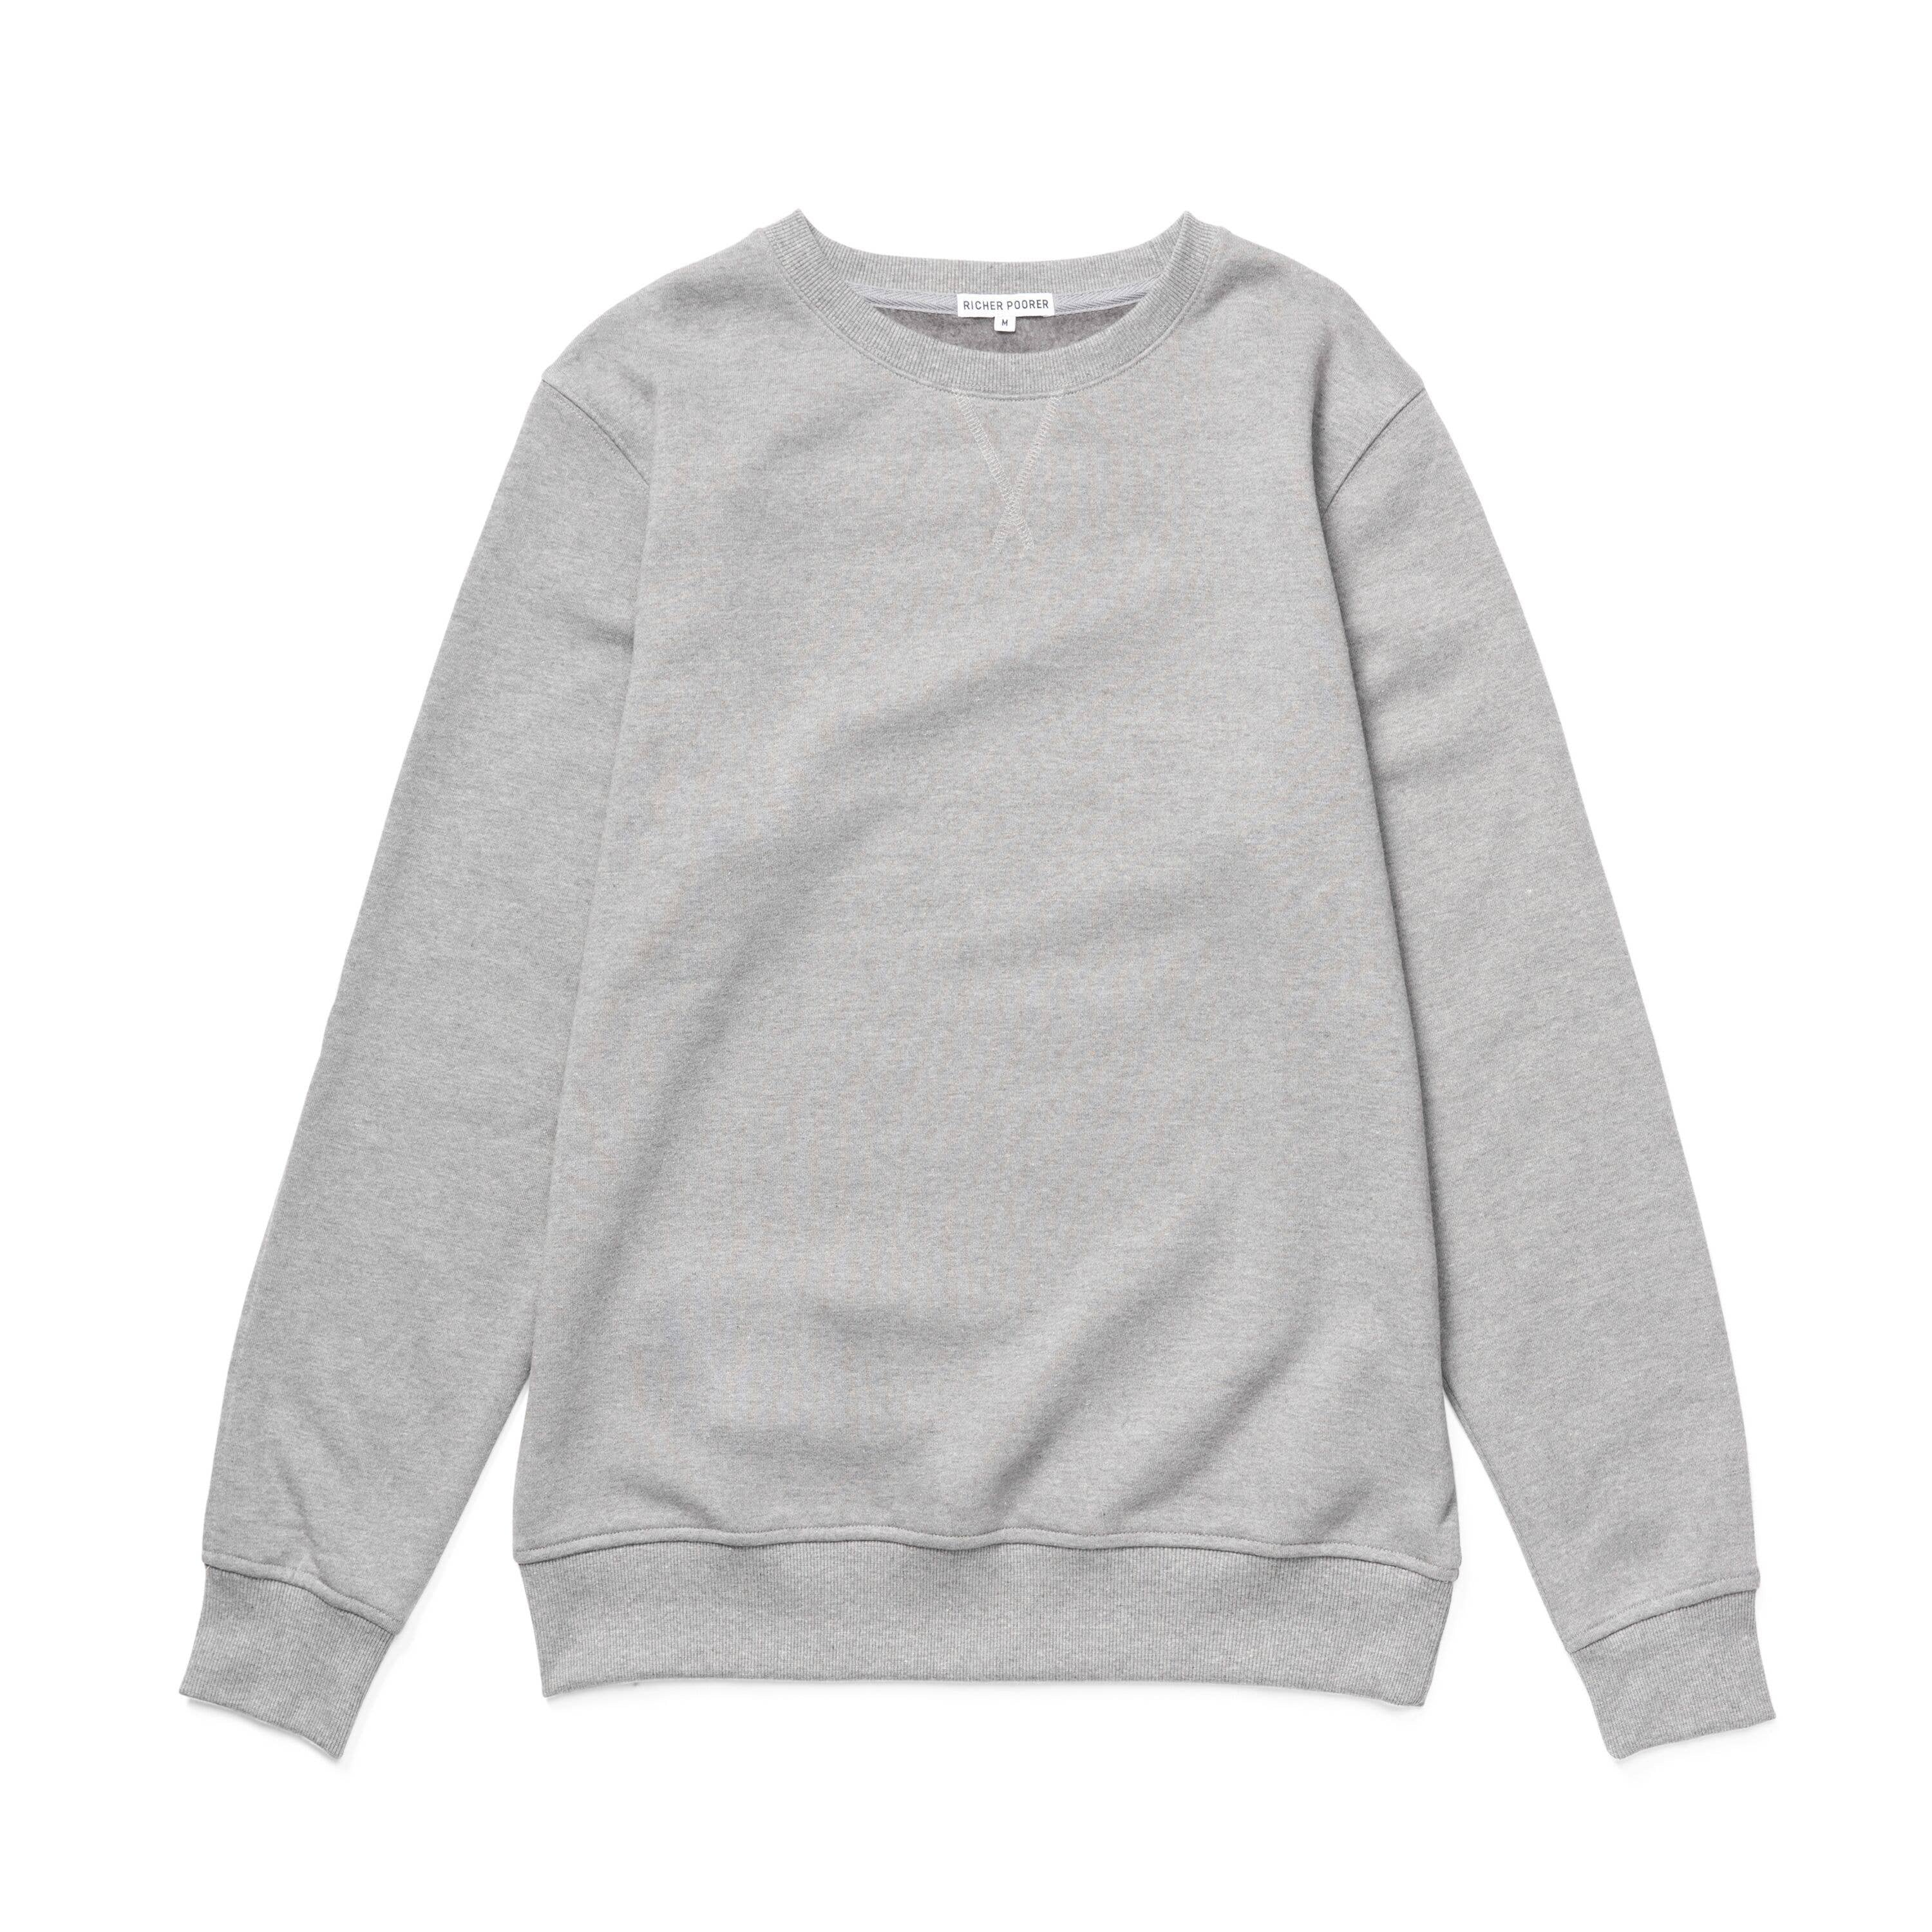 NEW YORKER ENZYME WASHED - Men's Crew Sweatshirt - Light Heather Gray